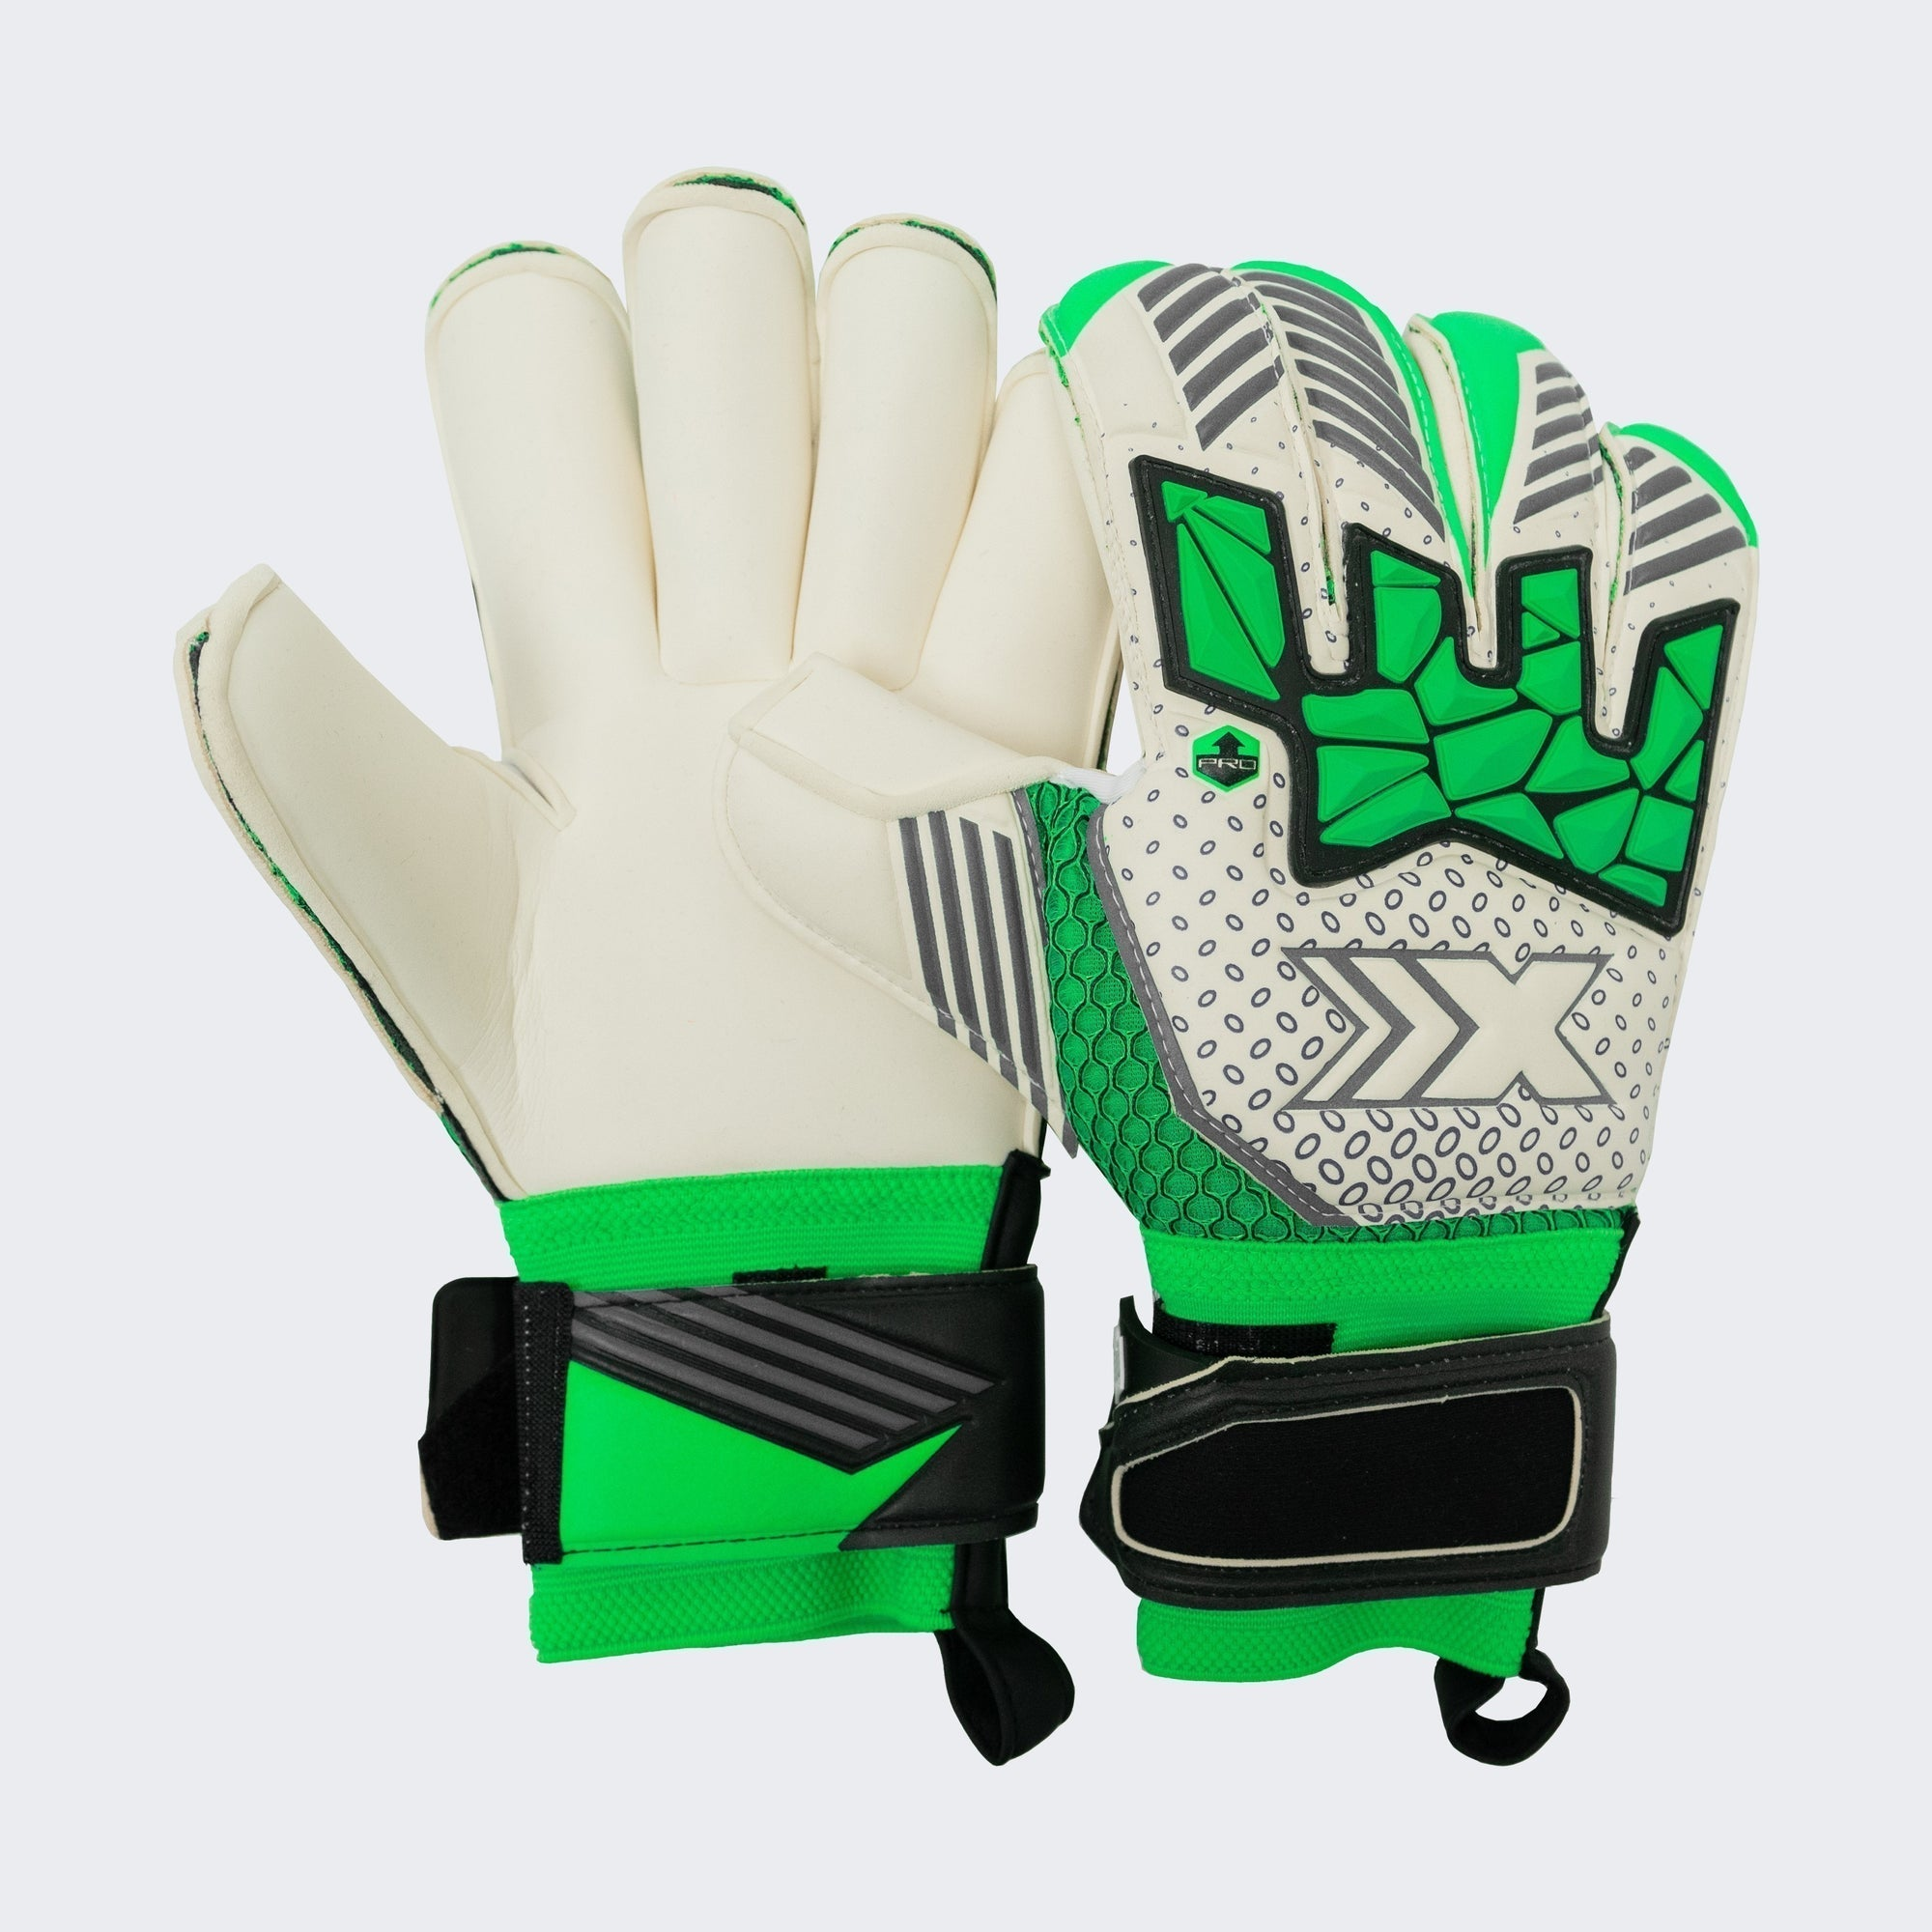 Pro Elite Goalkeeper Gloves - Off White/Green